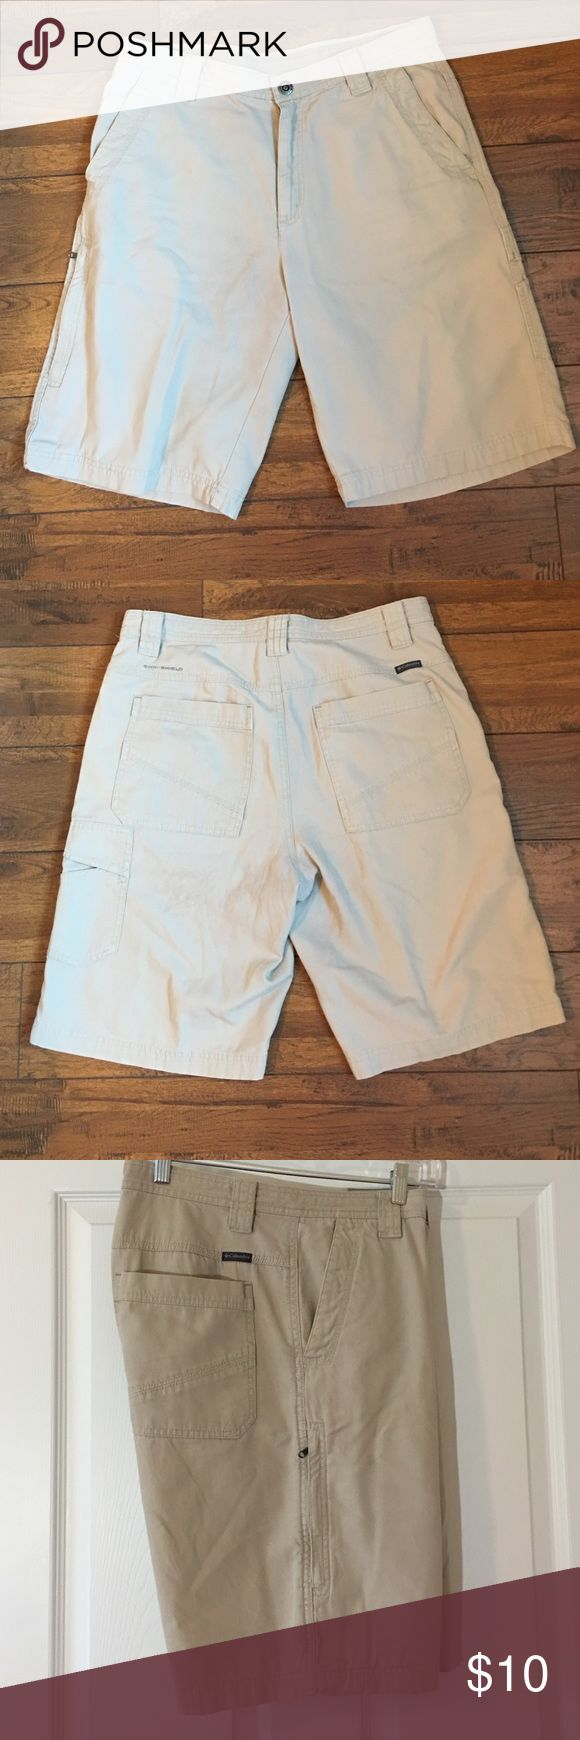 """Columbia hiking shorts. Hiking shorts with lots of pockets. Good condition. One light stain as seen in pic #4. 11"""" inseam. Columbia Shorts Cargo"""